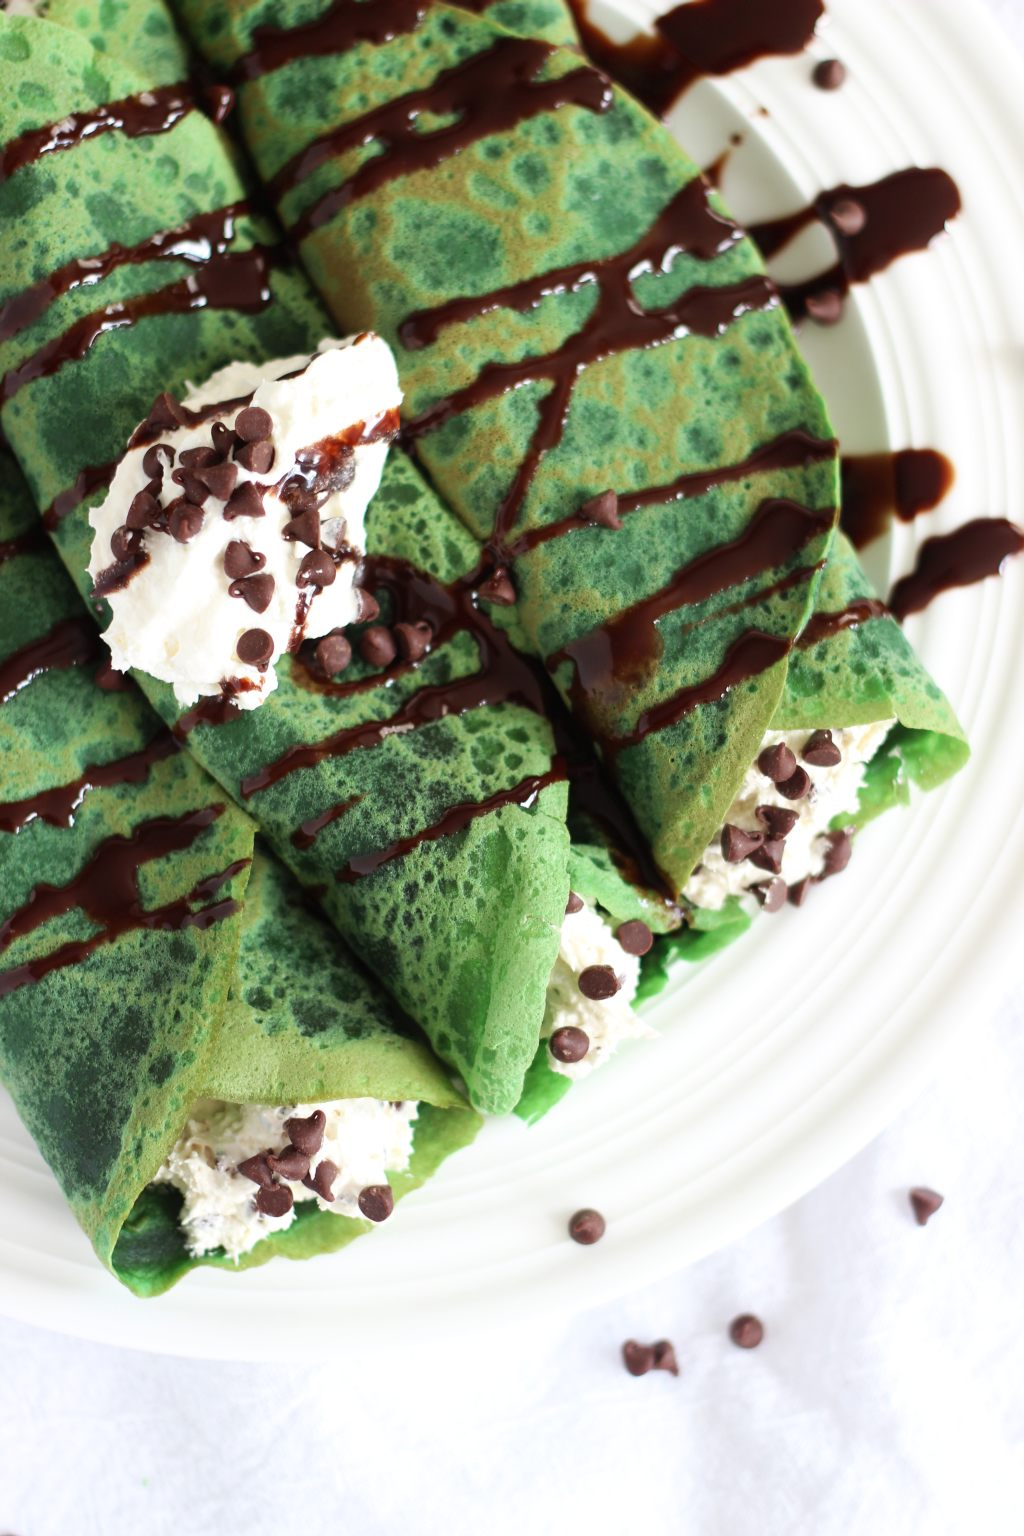 Green Velvet Crepes with Bailey's Chocolate Chip Cheesecake Filling